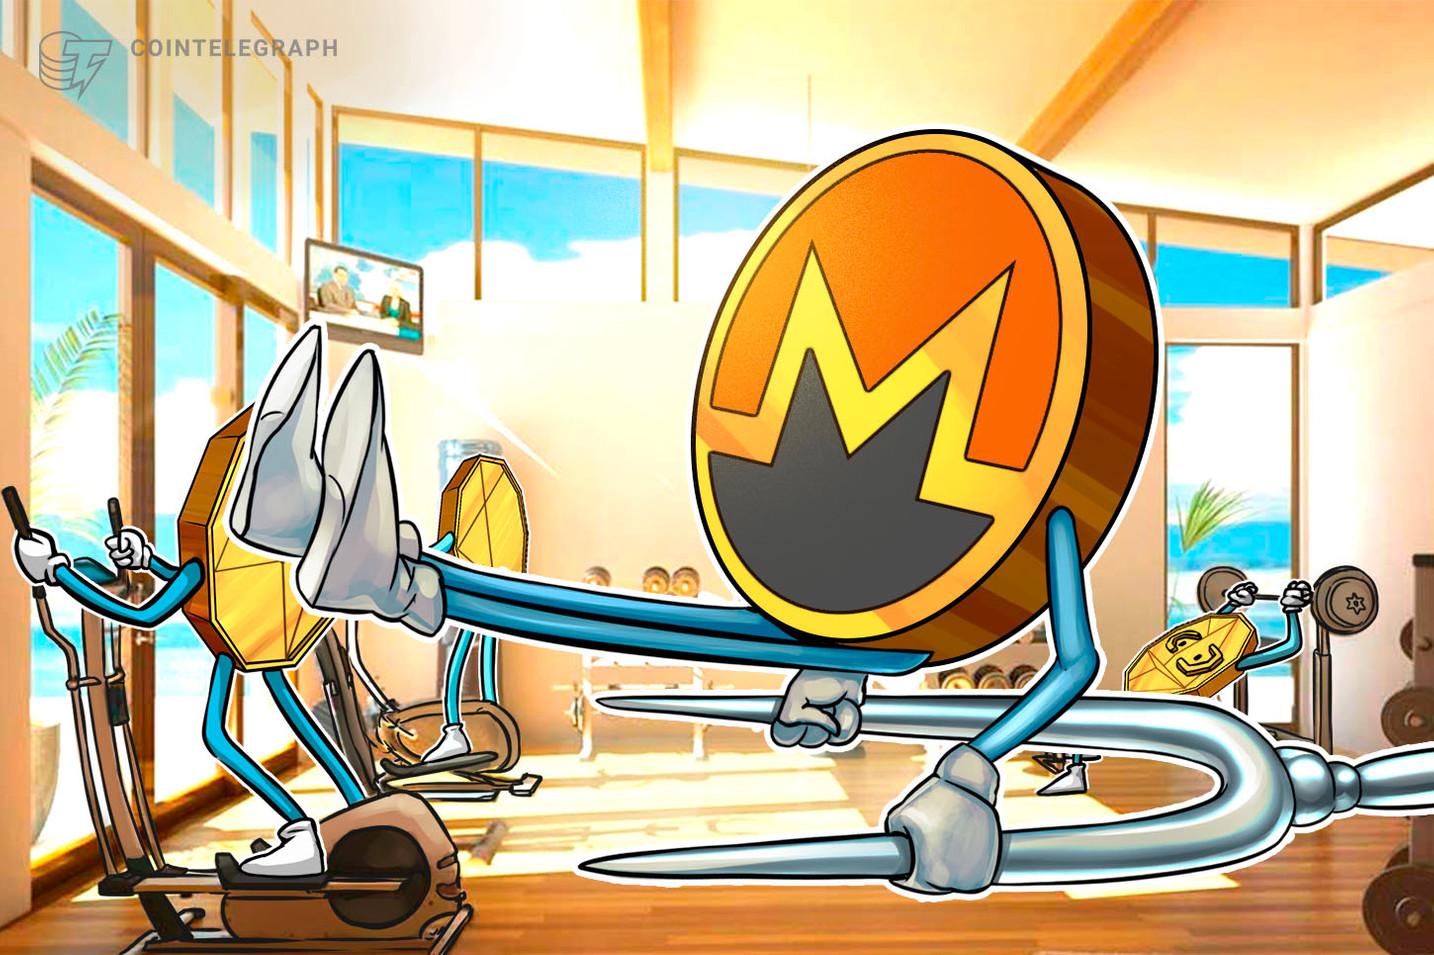 Monero Implements Hard Fork, Including New ASIC-Resistant Mining Algorithm